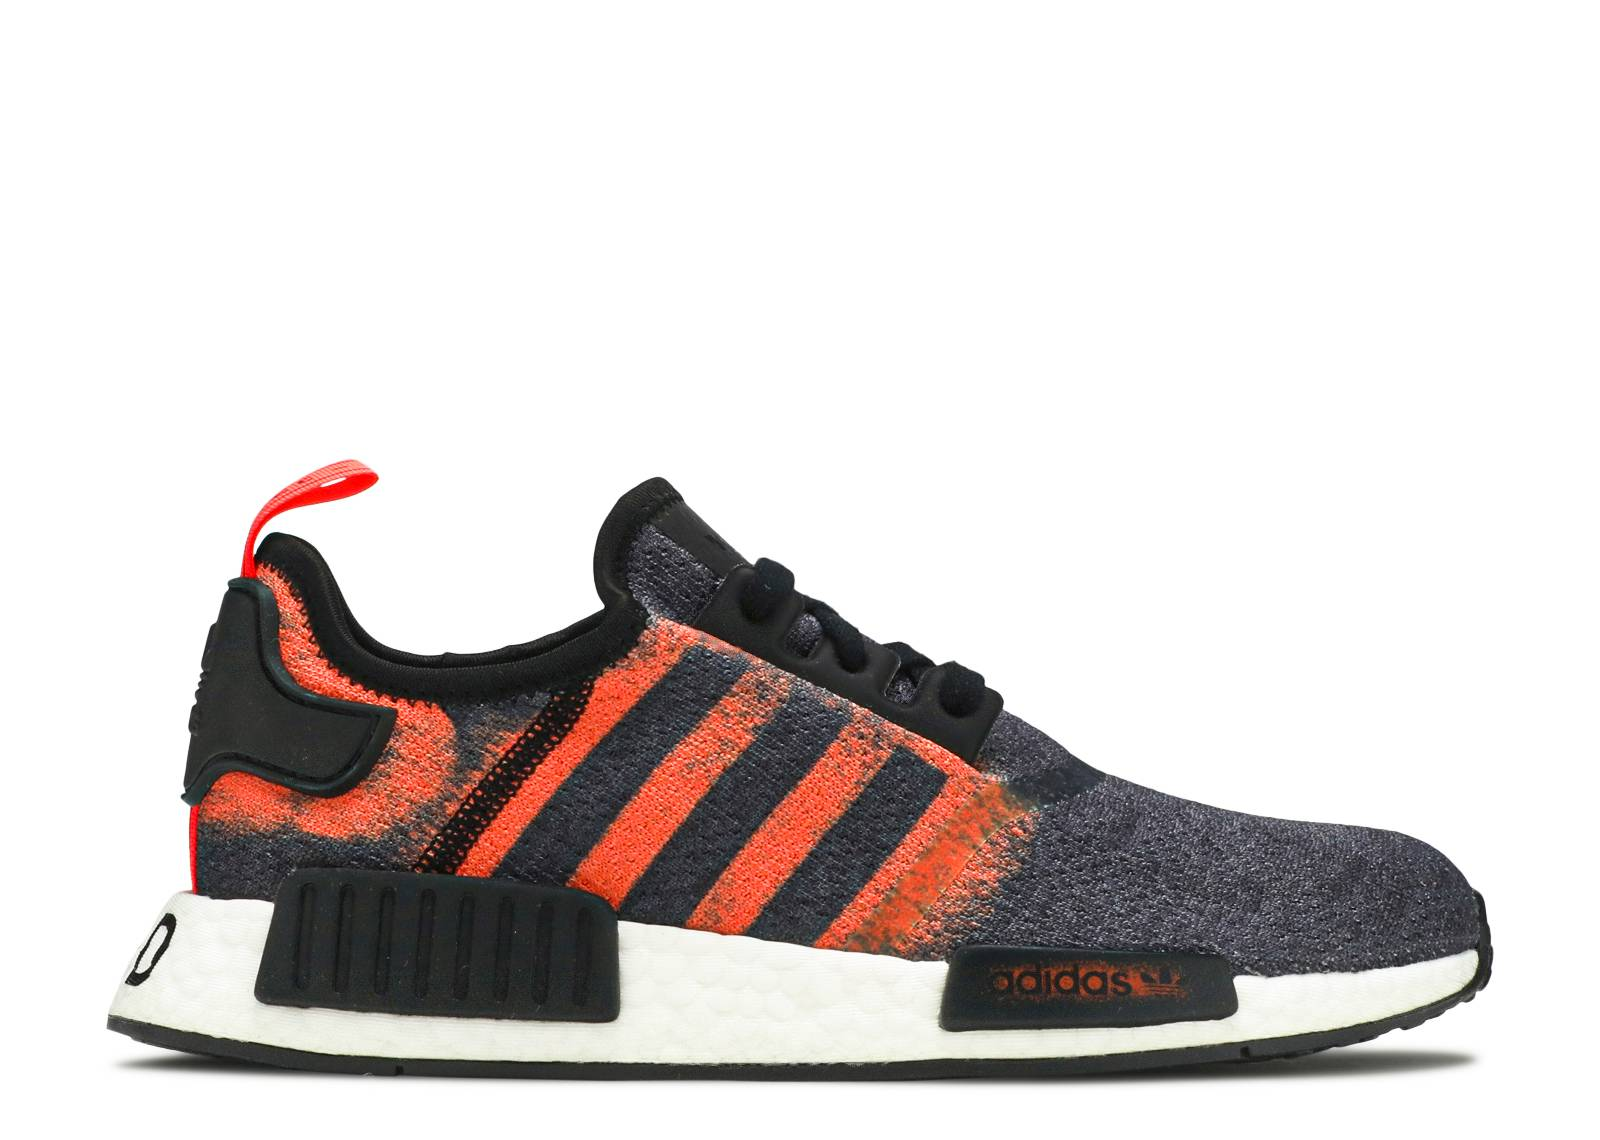 709179e79 Adidas NMD - adidas Originals Men s   Women s Shoes